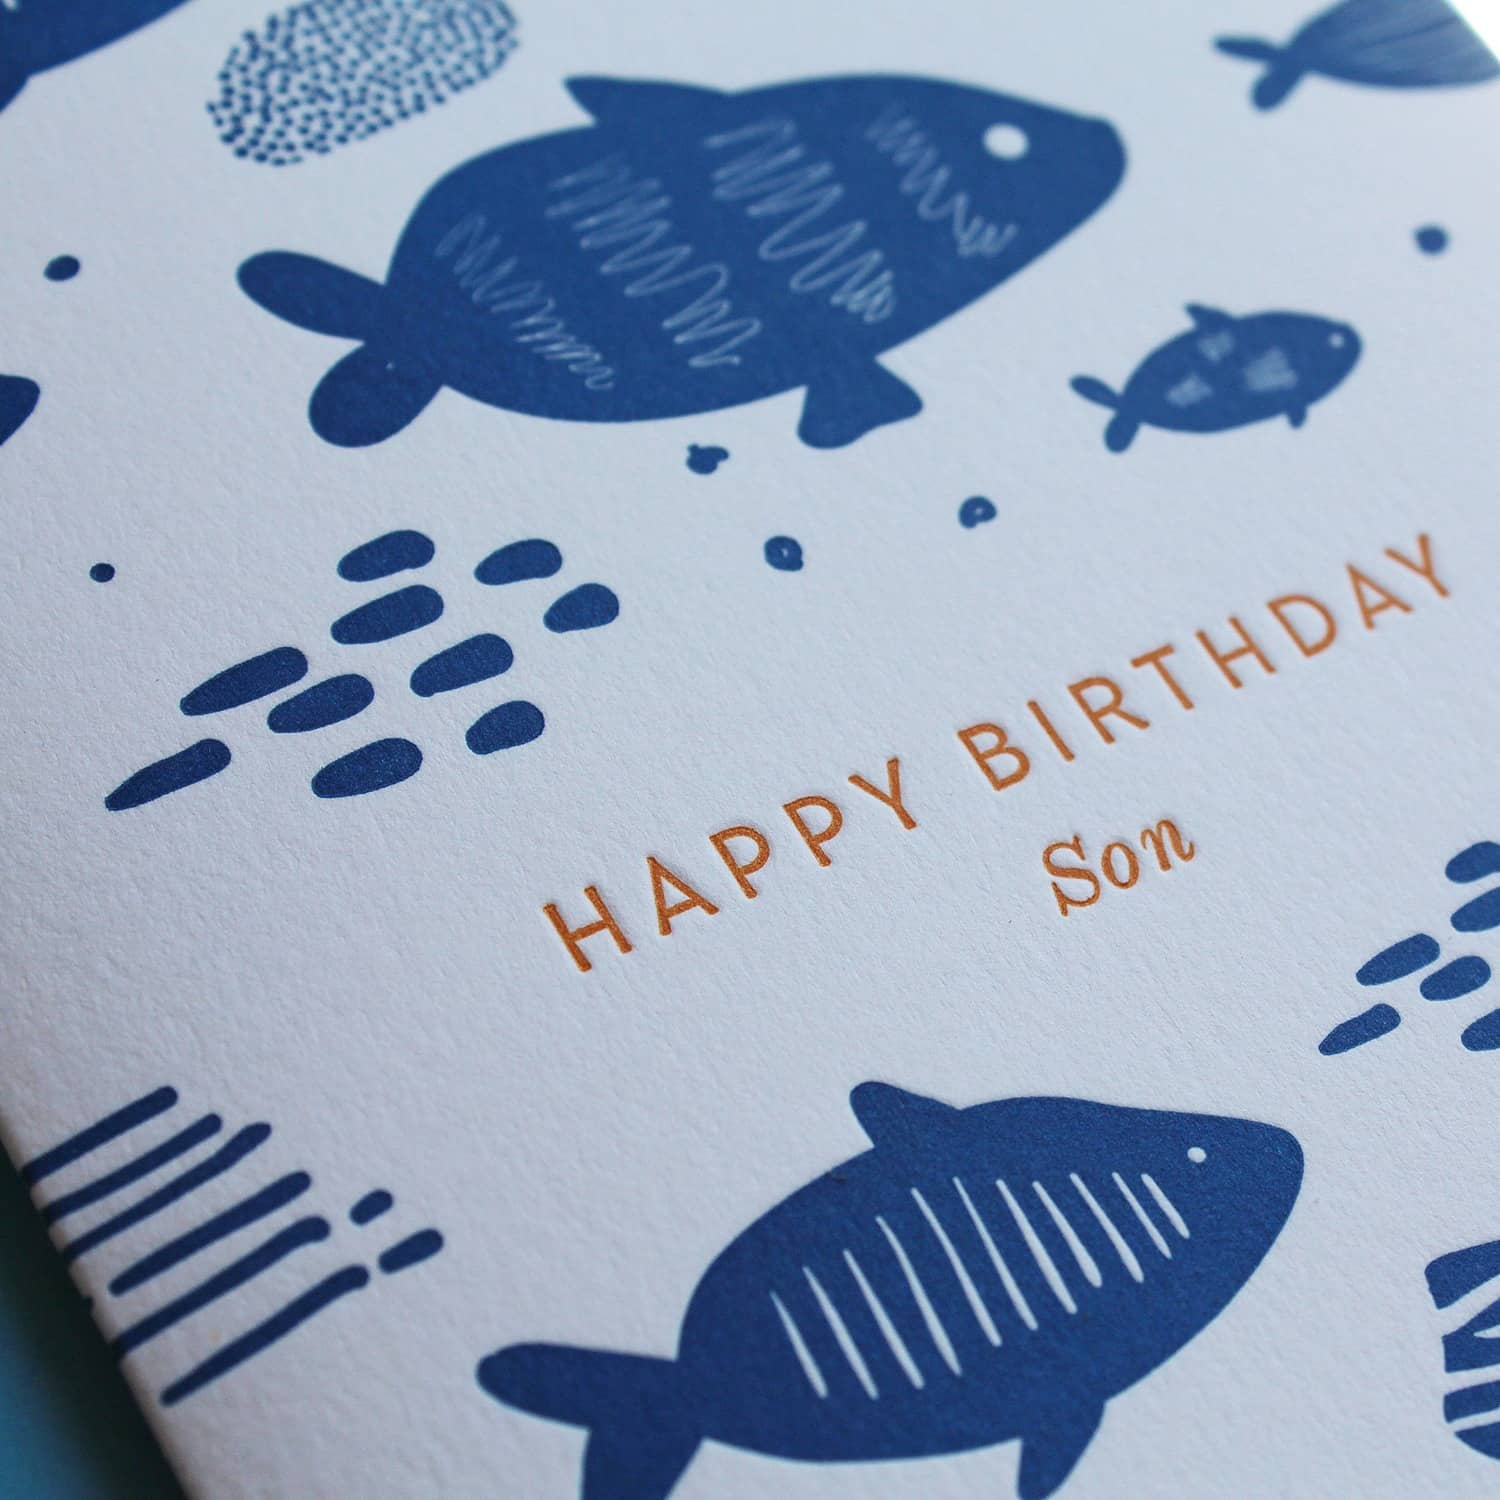 Letterpress Happy Birthday Son Greetings Card Artcadia Wolf Badger